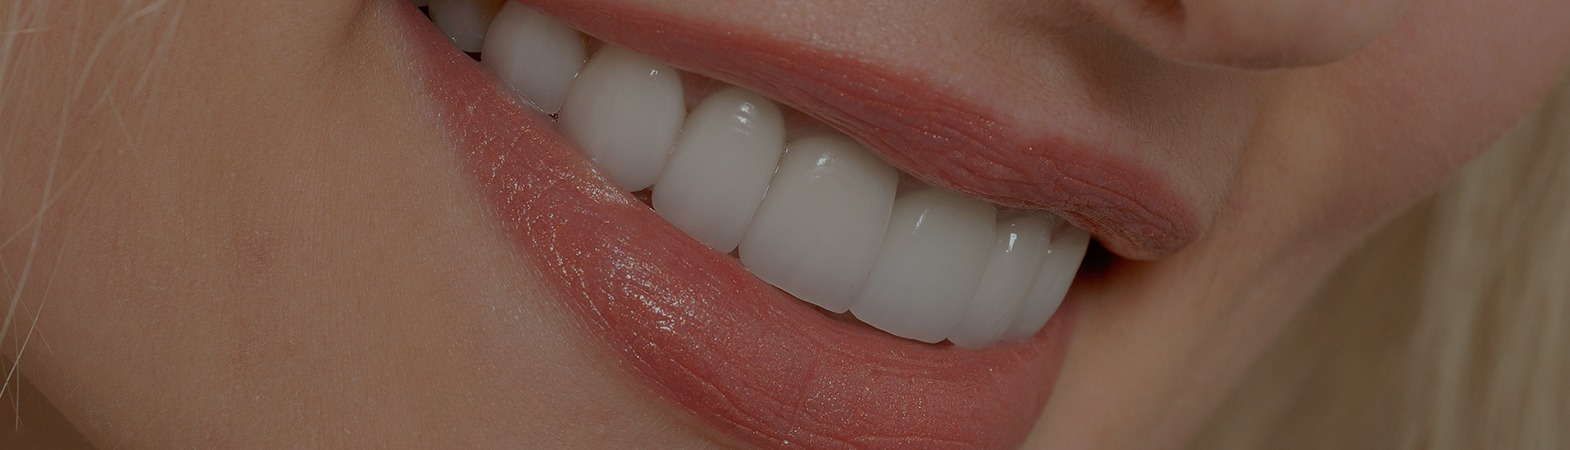 Chipped Tooth or Cracked Tooth | I Cracked My Tooth- Now What?